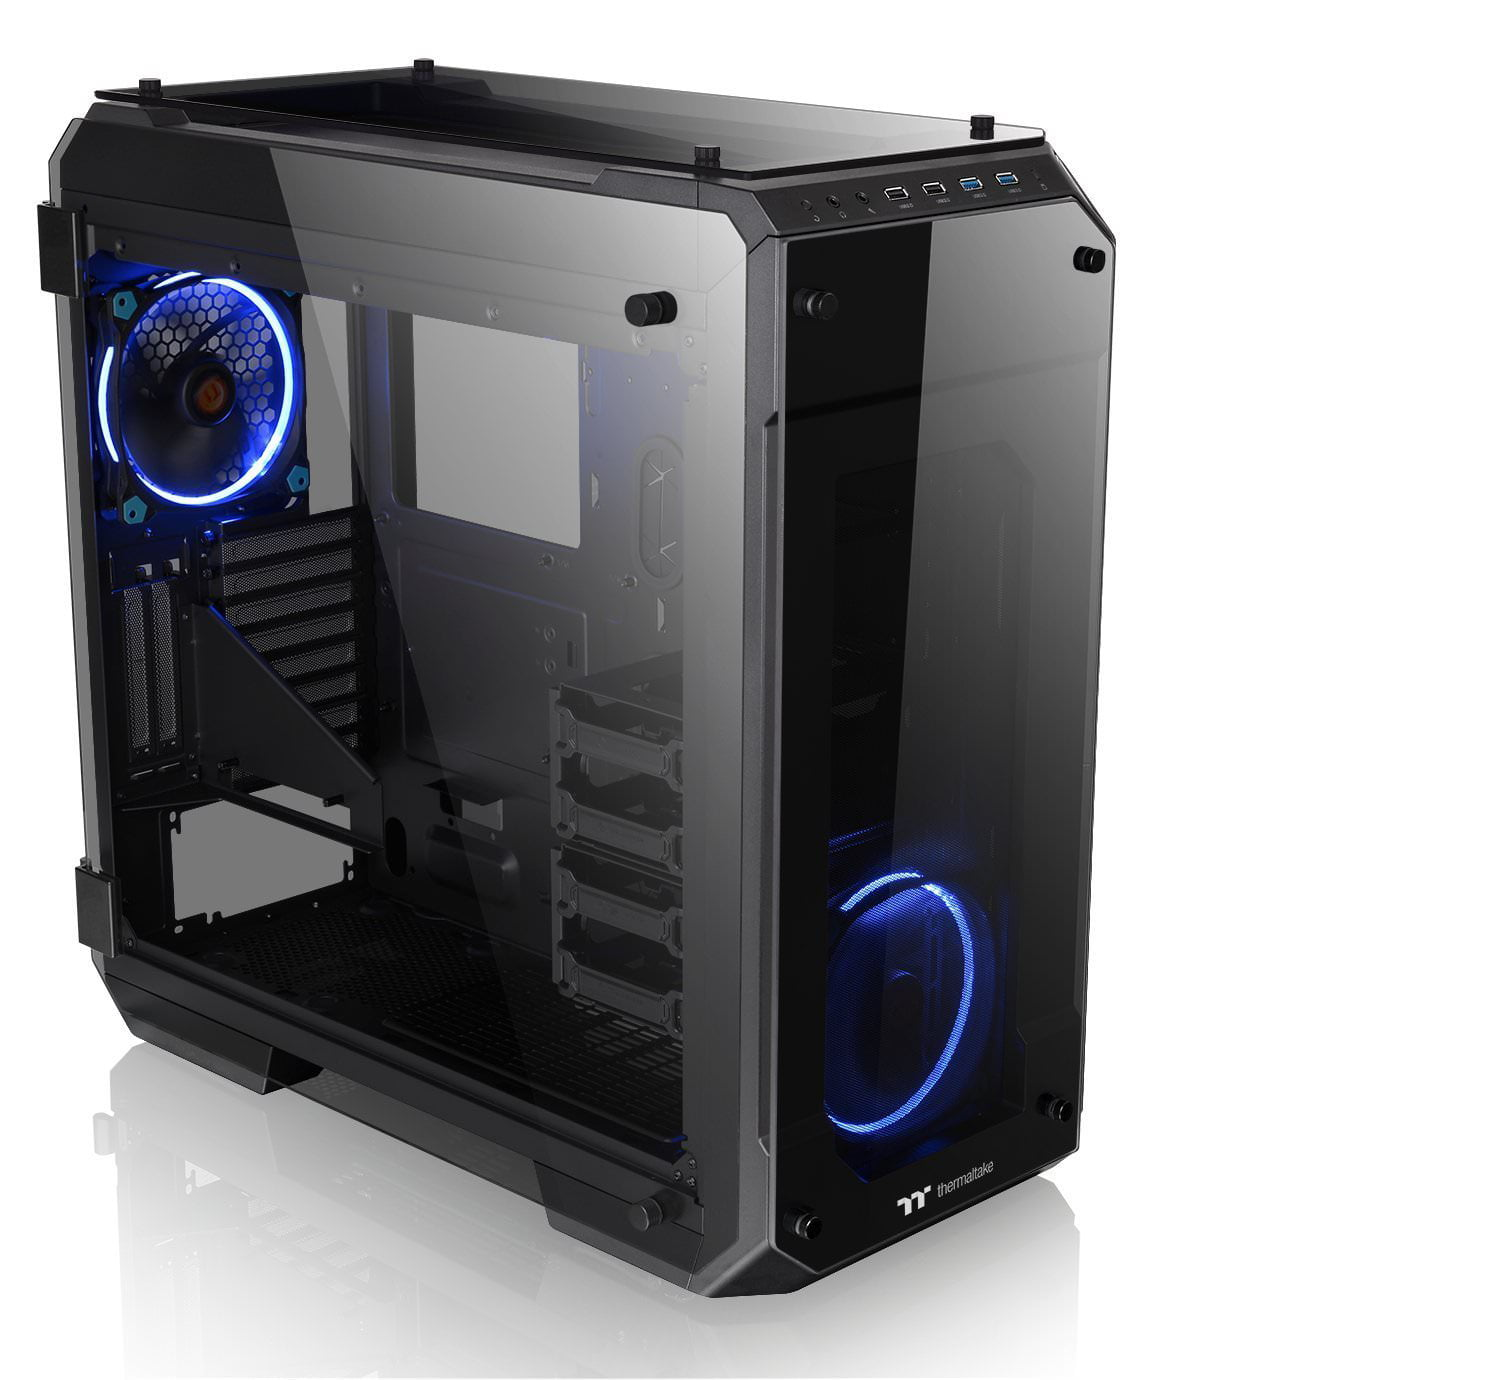 Thermaltake View 71 Tempered Glass Edition by Thermaltake